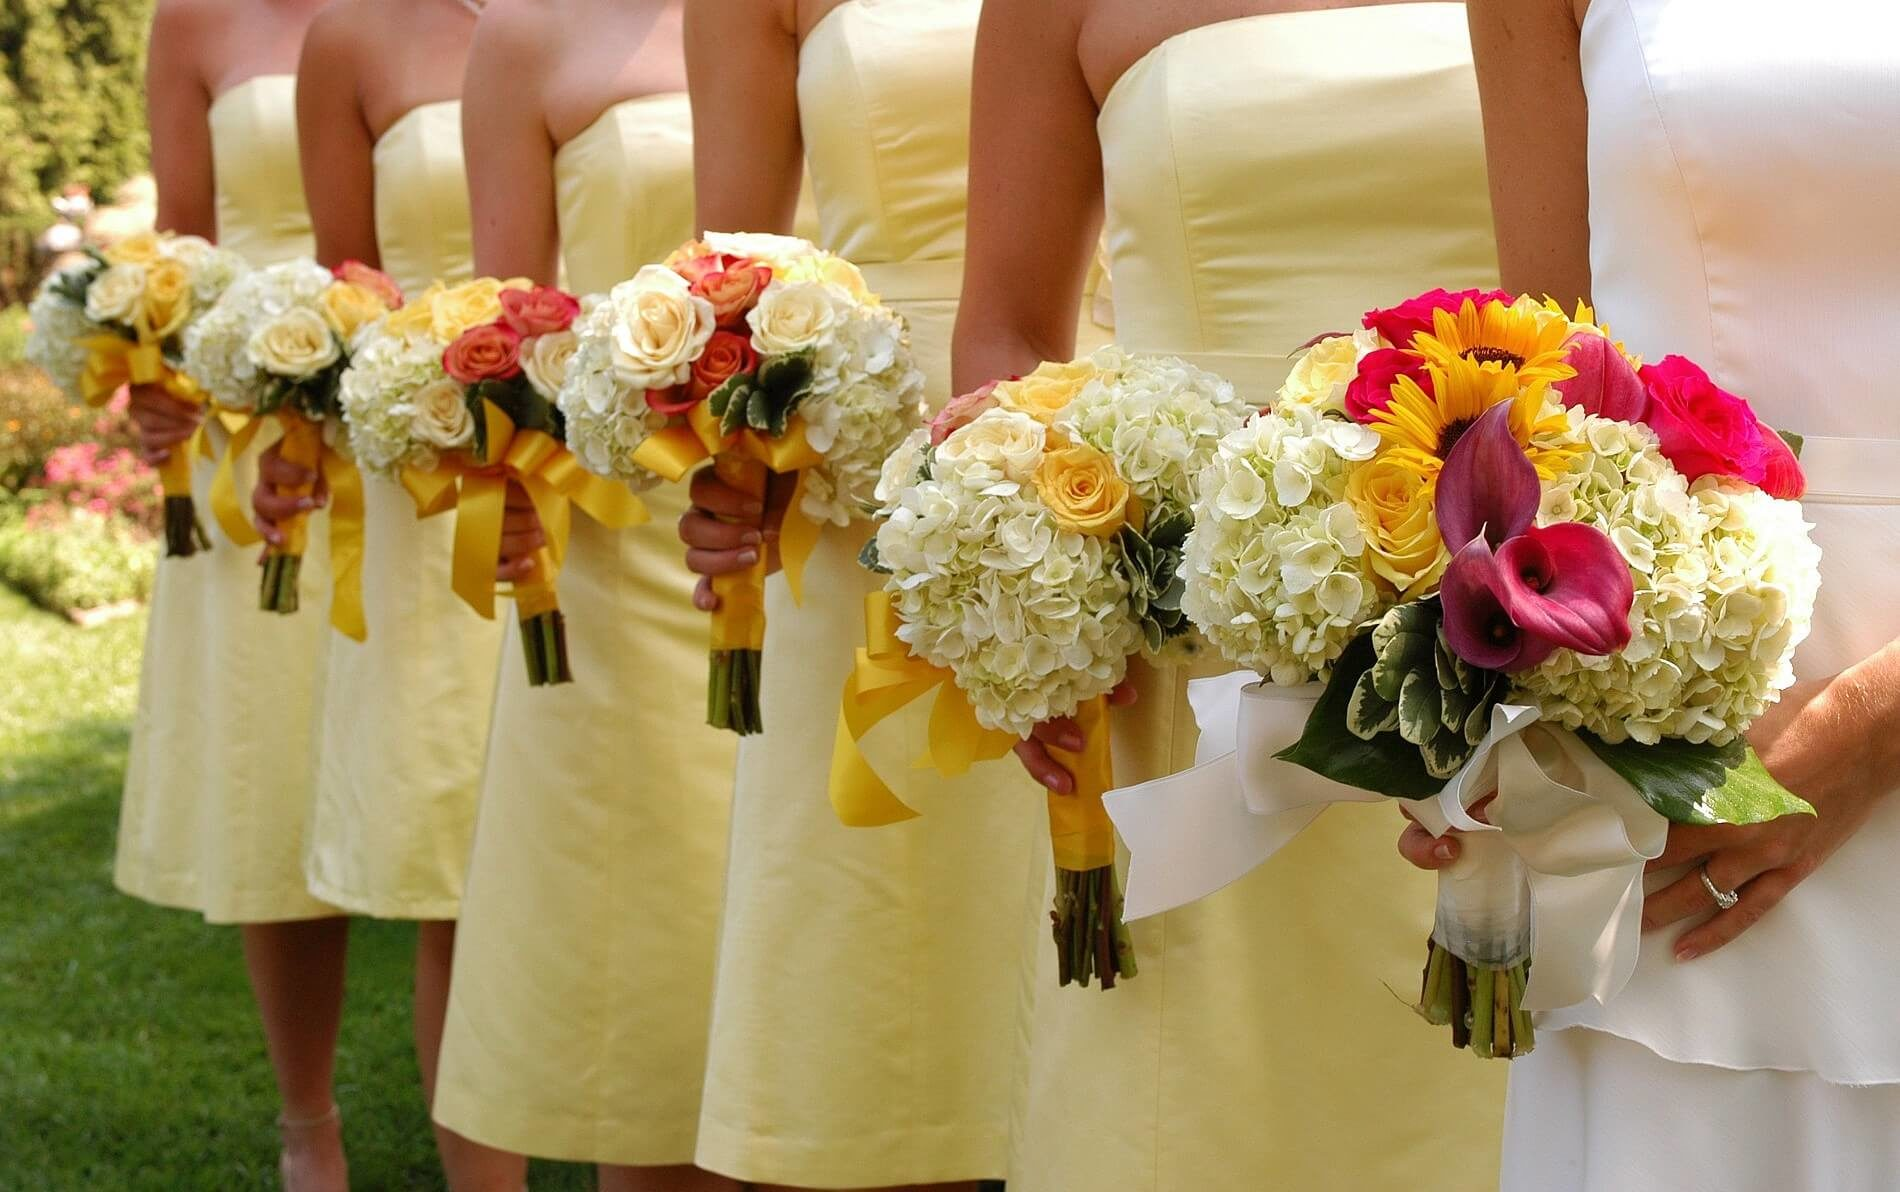 Bride in white dress with 5 bridesmaids in yellow dresses all with orange and yellow rose bouquets